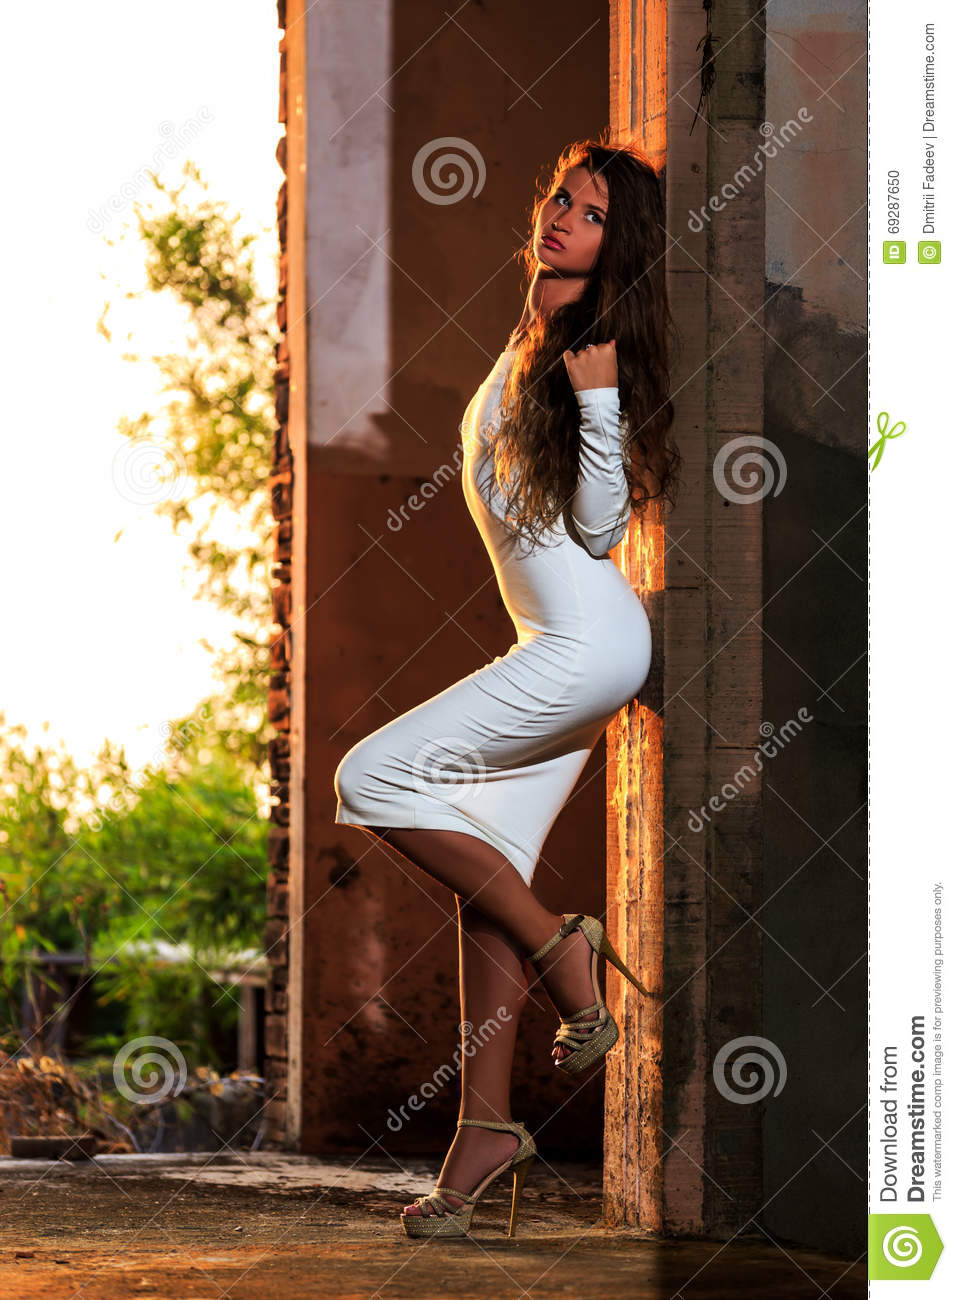 Young Girl Posing In An Abandoned Building Stock Photo